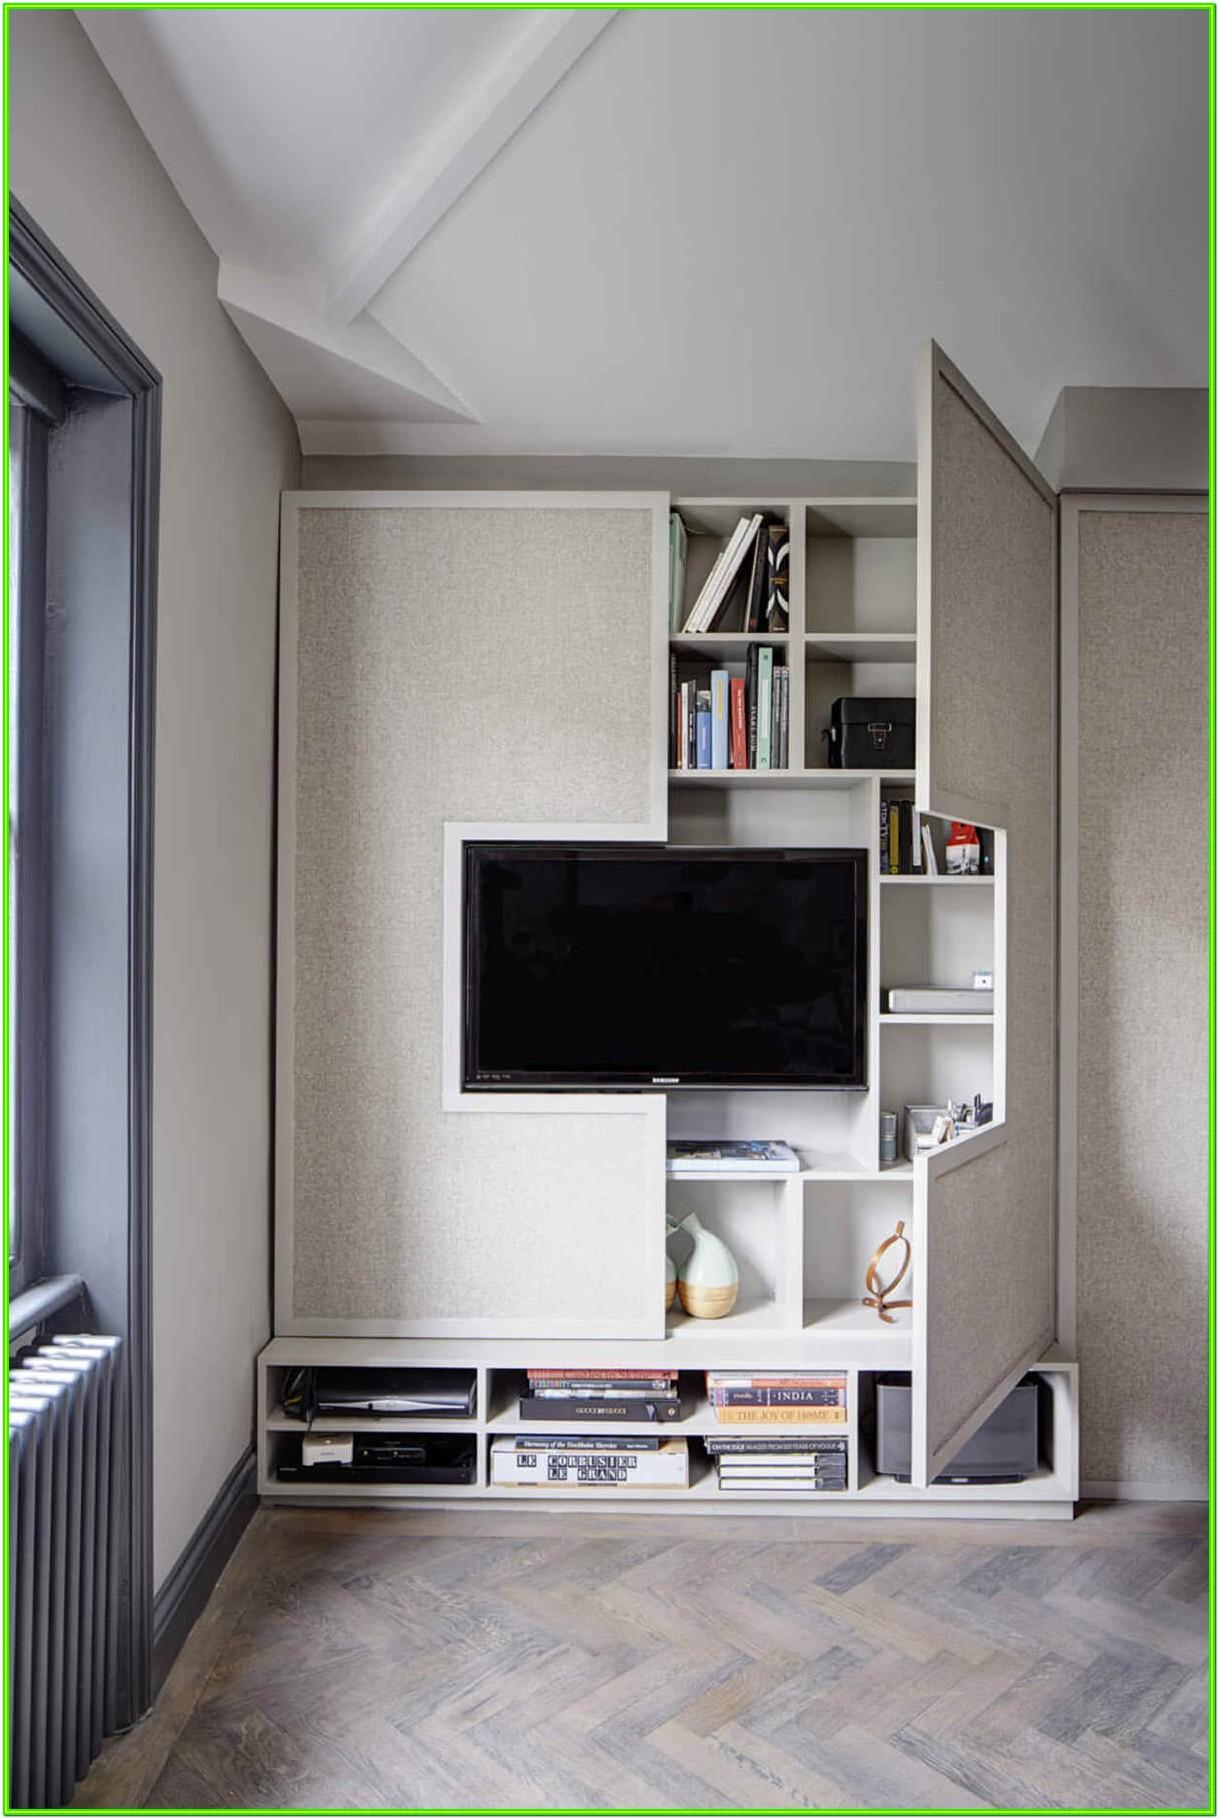 Living Room Built In Storage Ideas